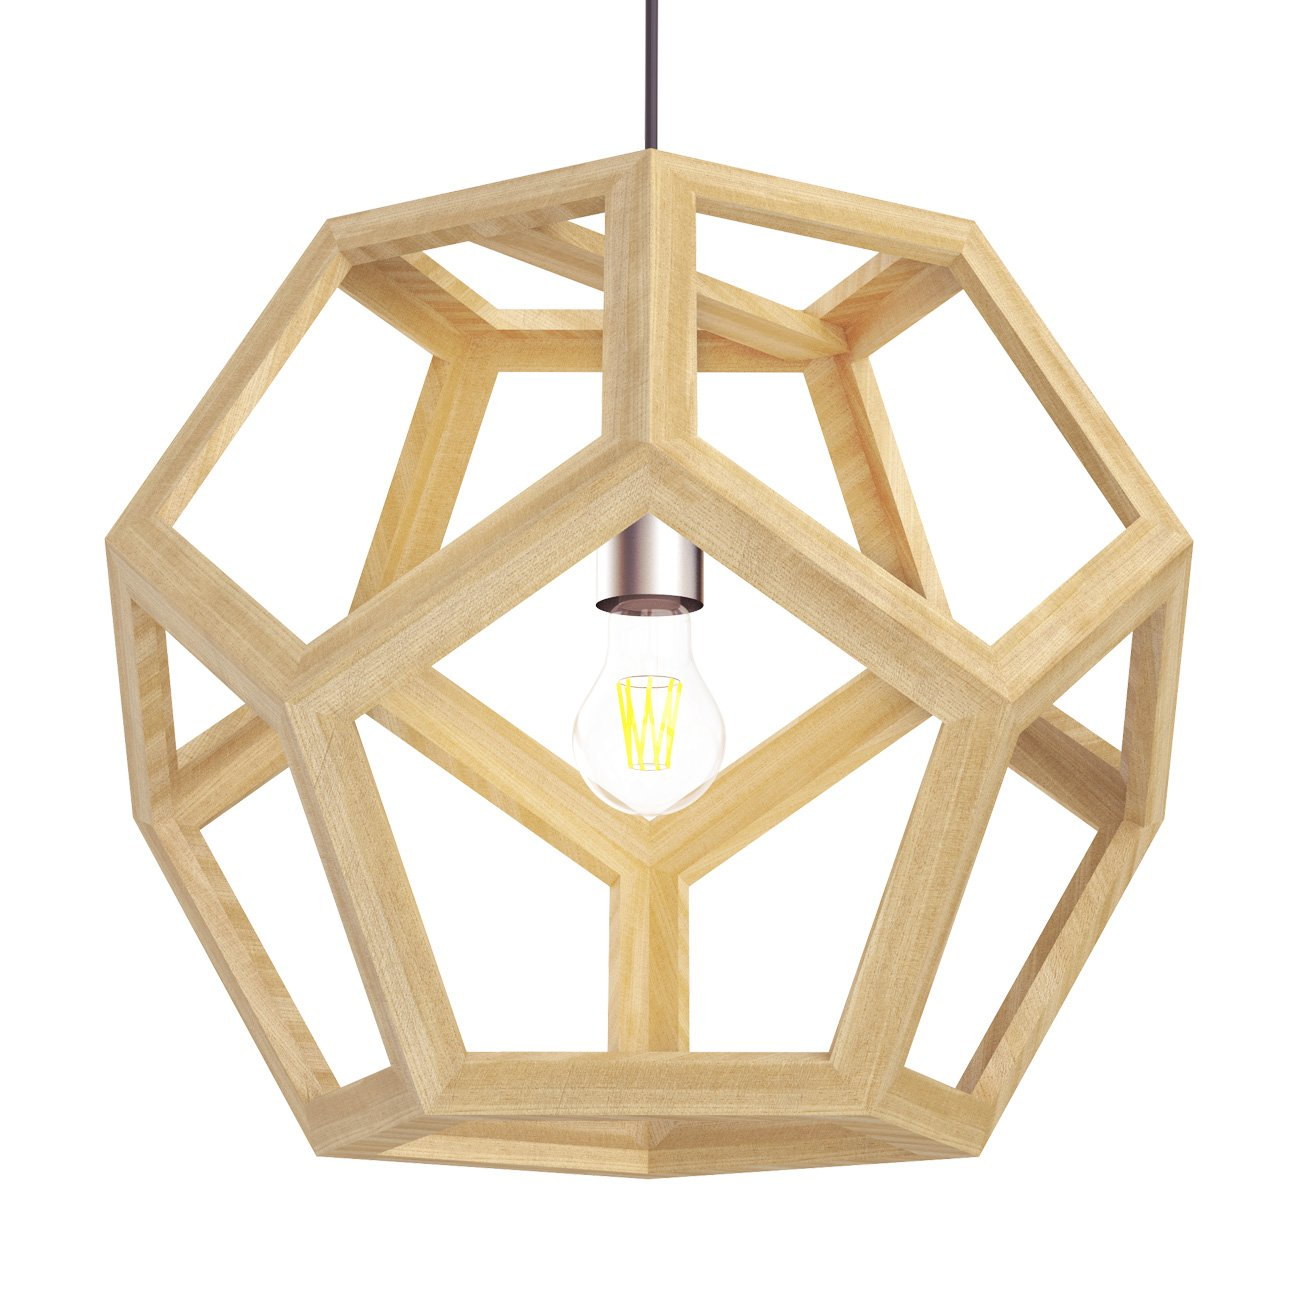 Tomons Hollow Design Wood Ceiling Pendant Lamp, Geometry Shape, E26/E27 Bulb Base, 60 Watts Incandescent Bulb, 12 Watts LED Bulb For Dining Room, Living Room, Bedroom, Study Room - PL1002 by tomons (Image #1)